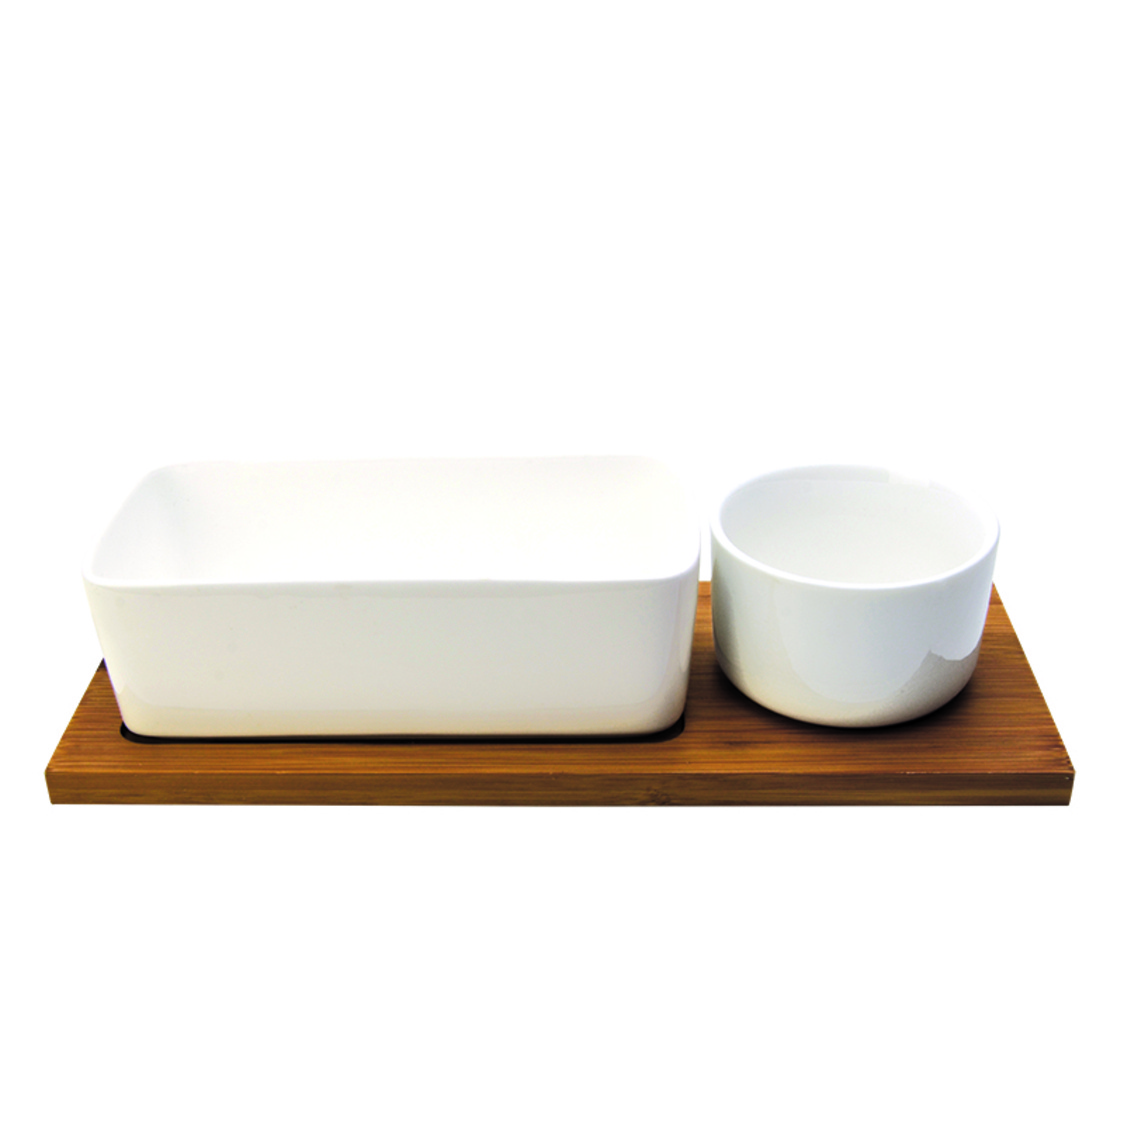 Touche 2 Condiment Bowls On Bamboo Base SR-54